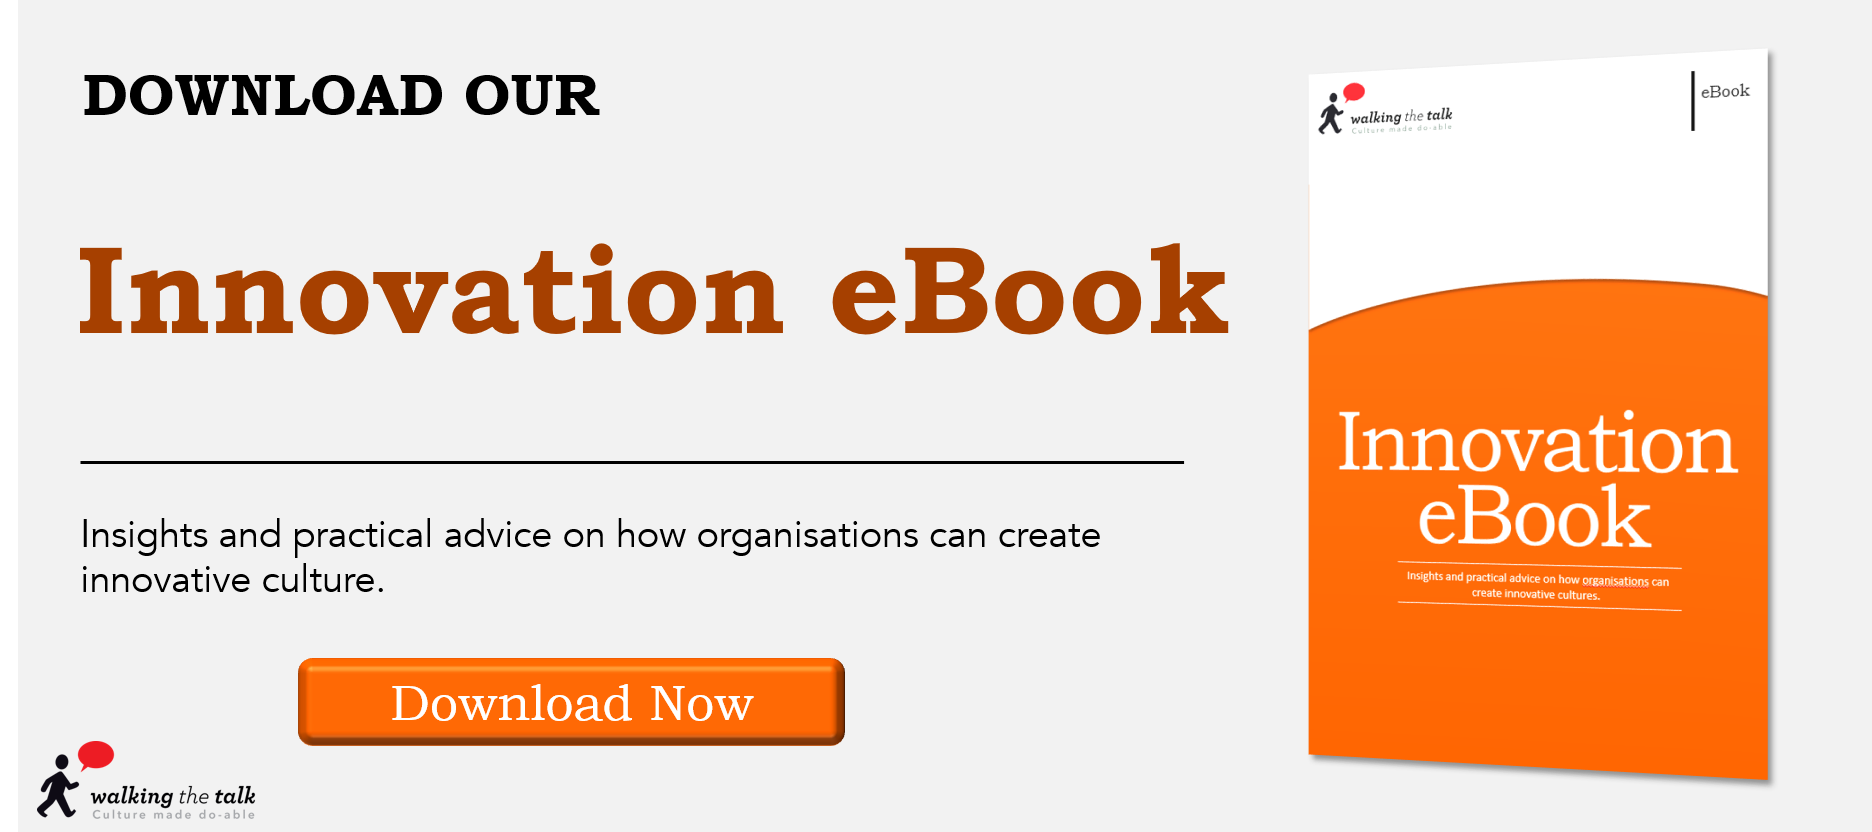 Innovation eBook